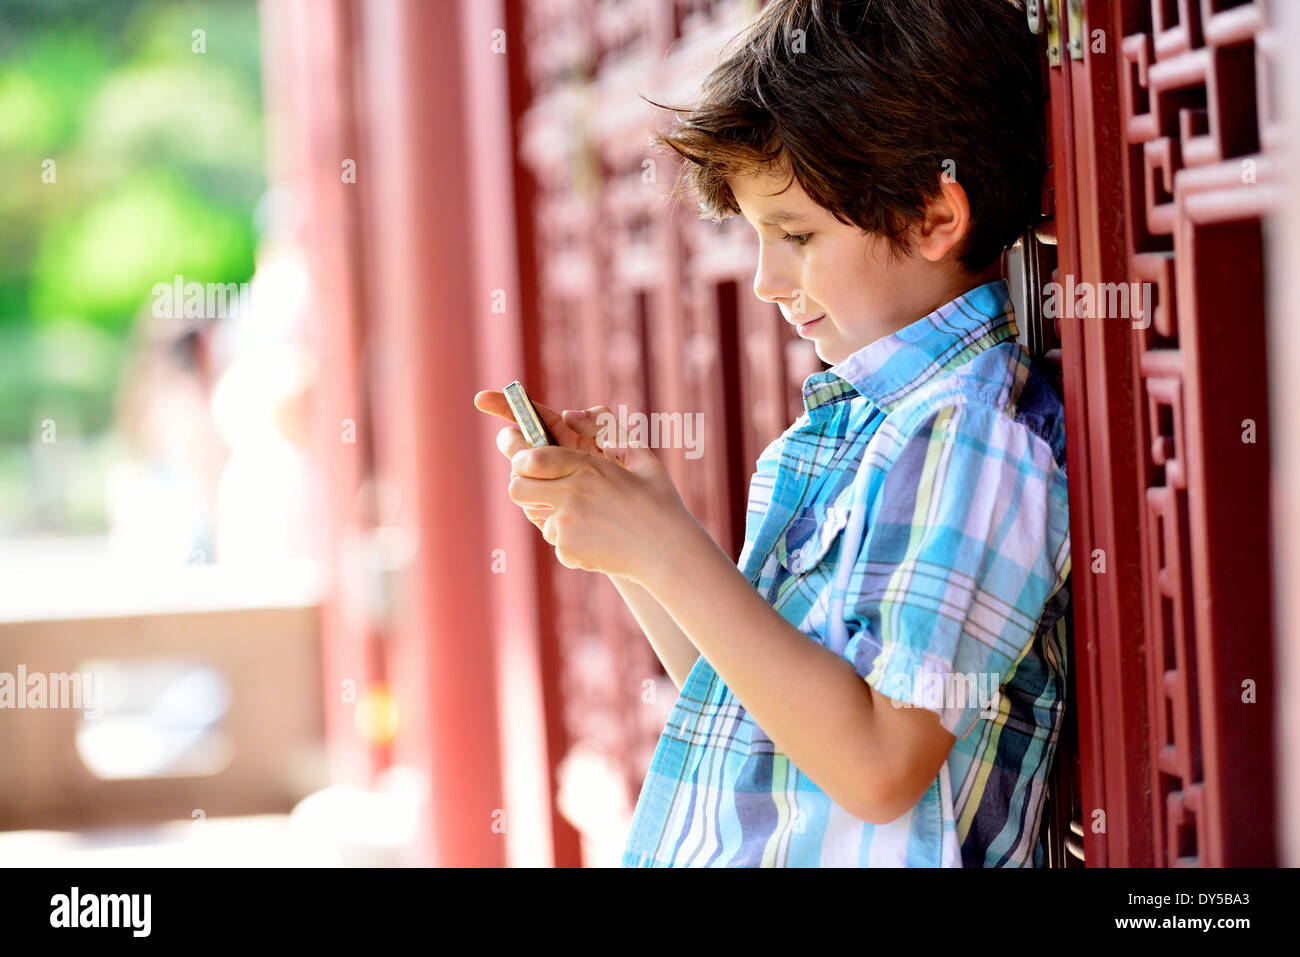 Boy leaning against red door texting on cellphone - Stock Image